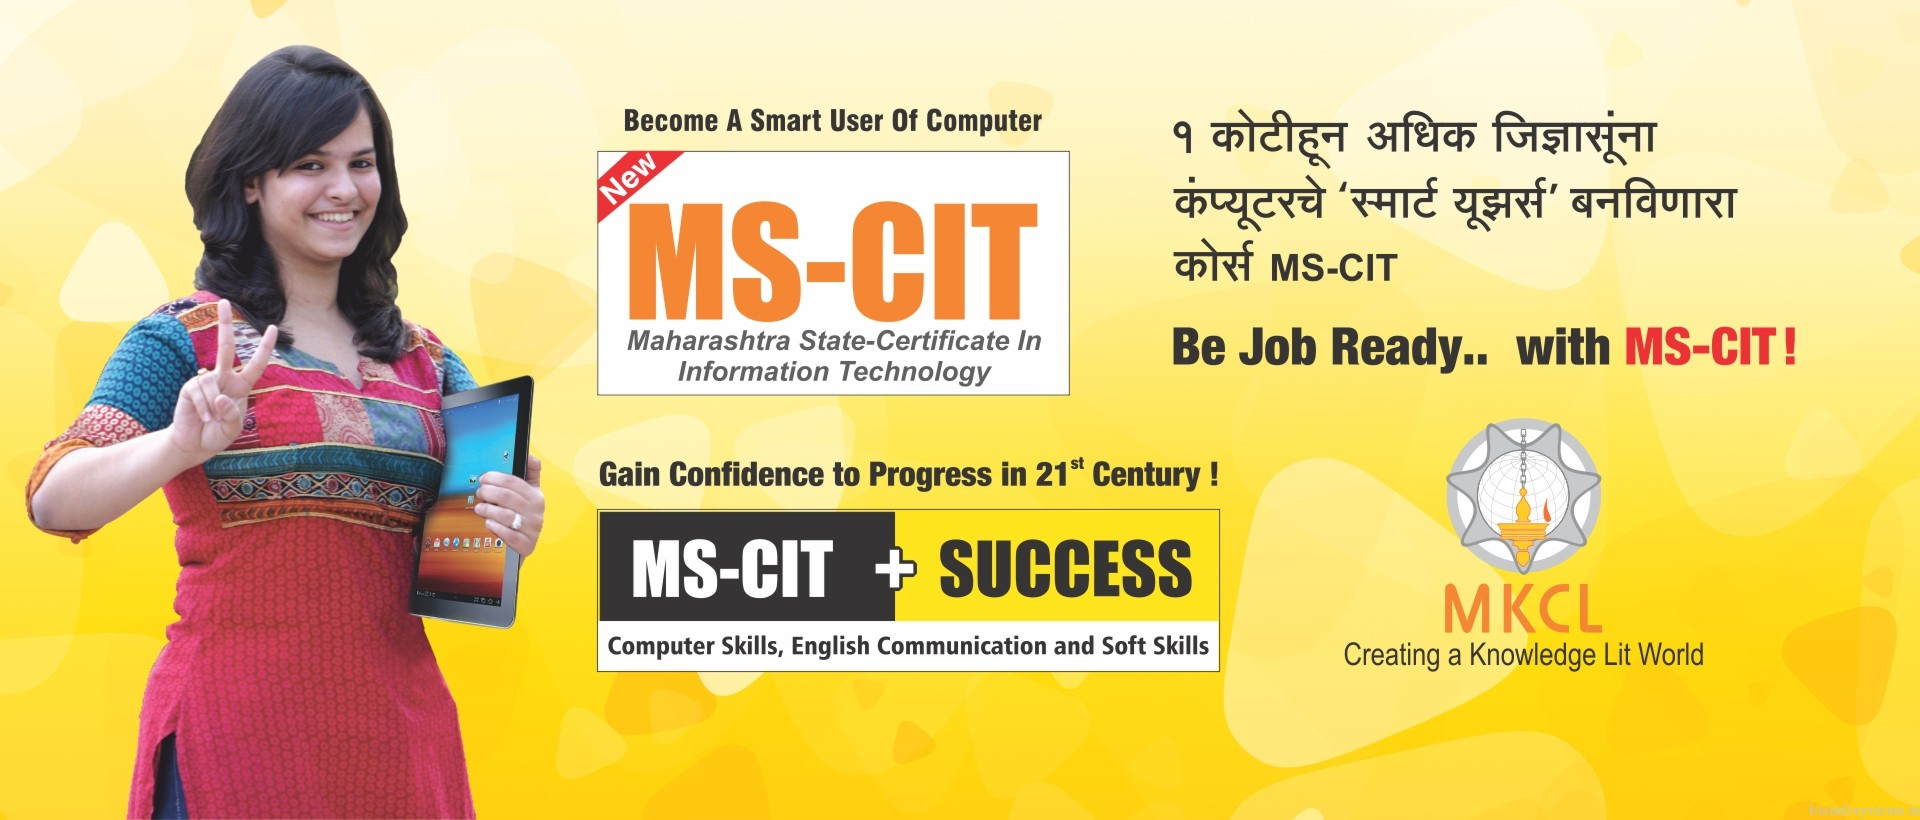 MS-CIT Computer Education / Image 5